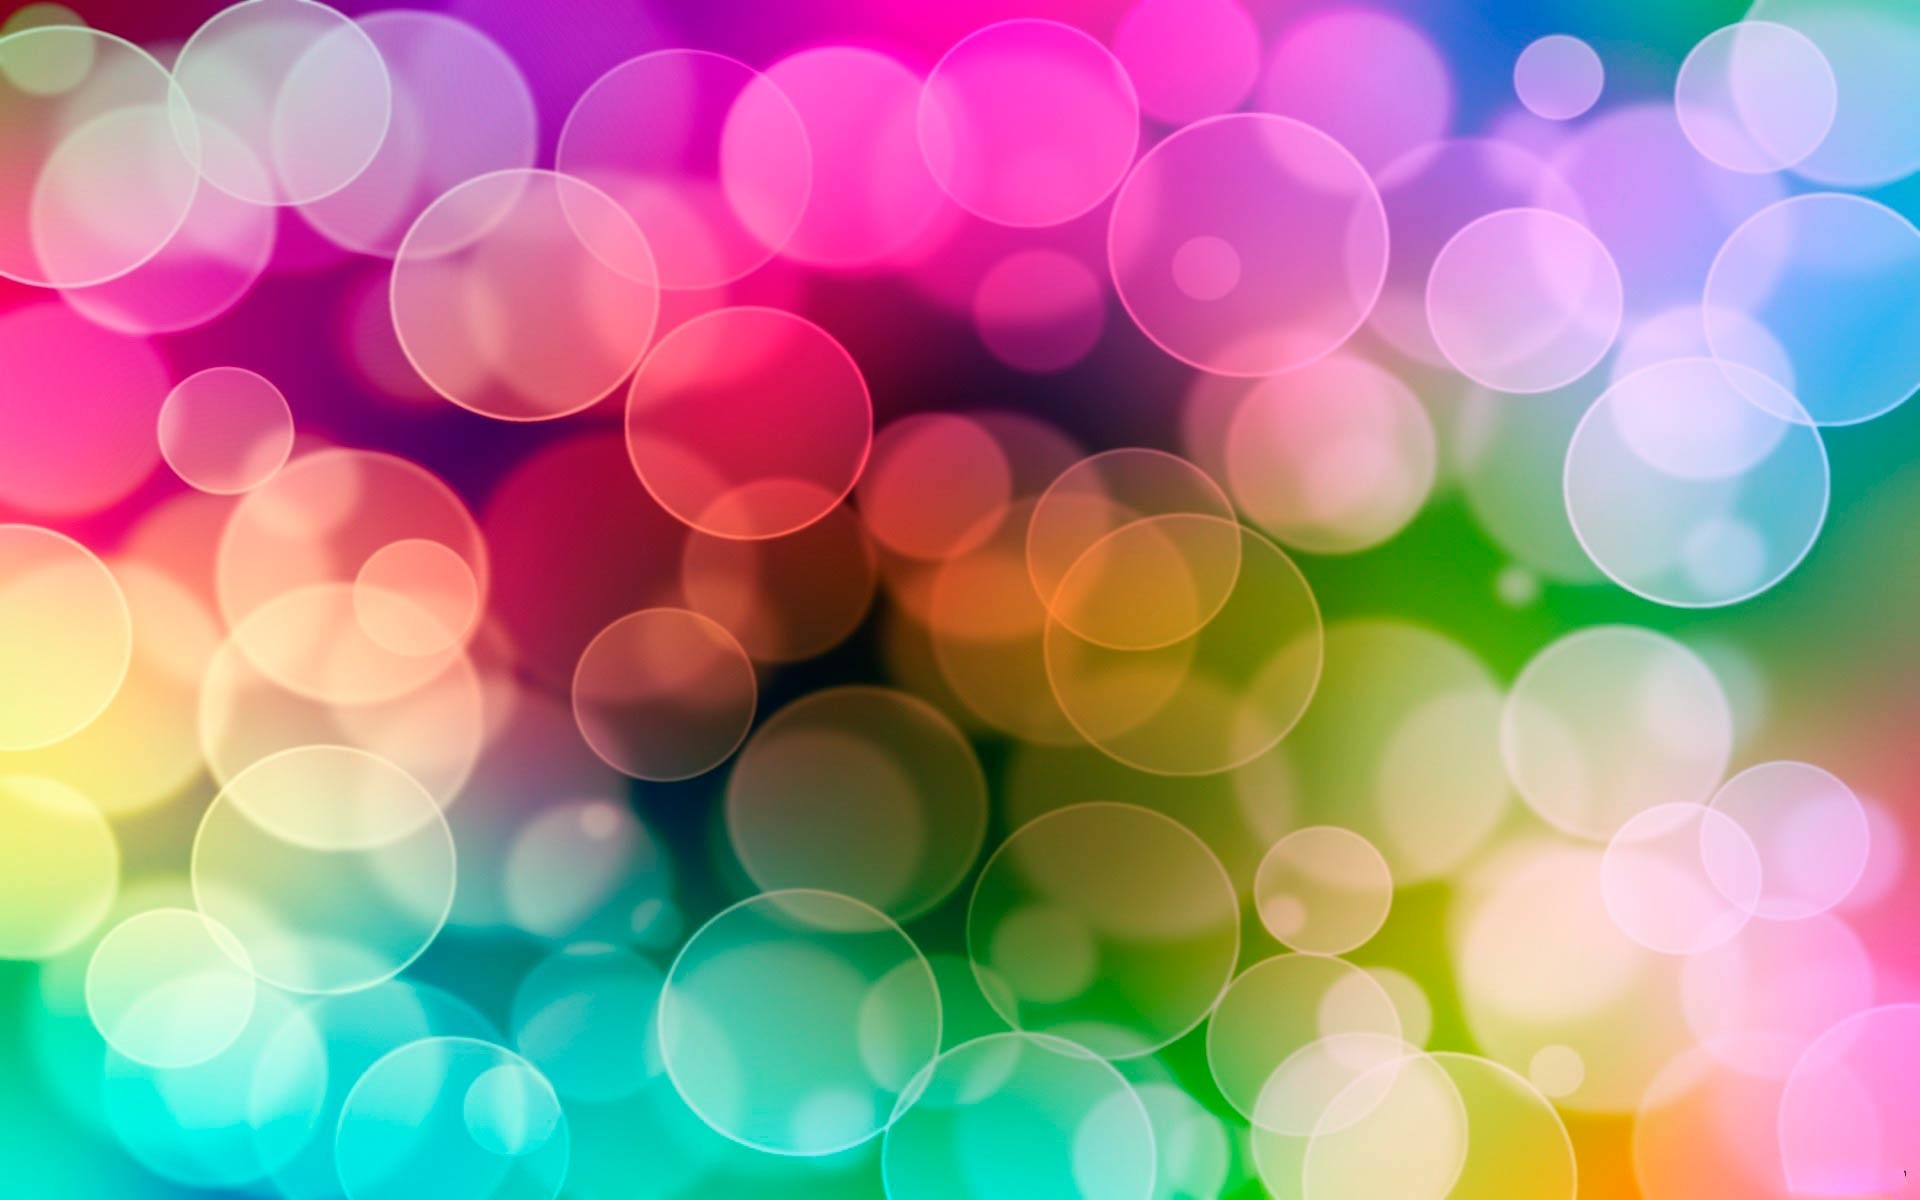 colorful hd backgrounds (72+ images)